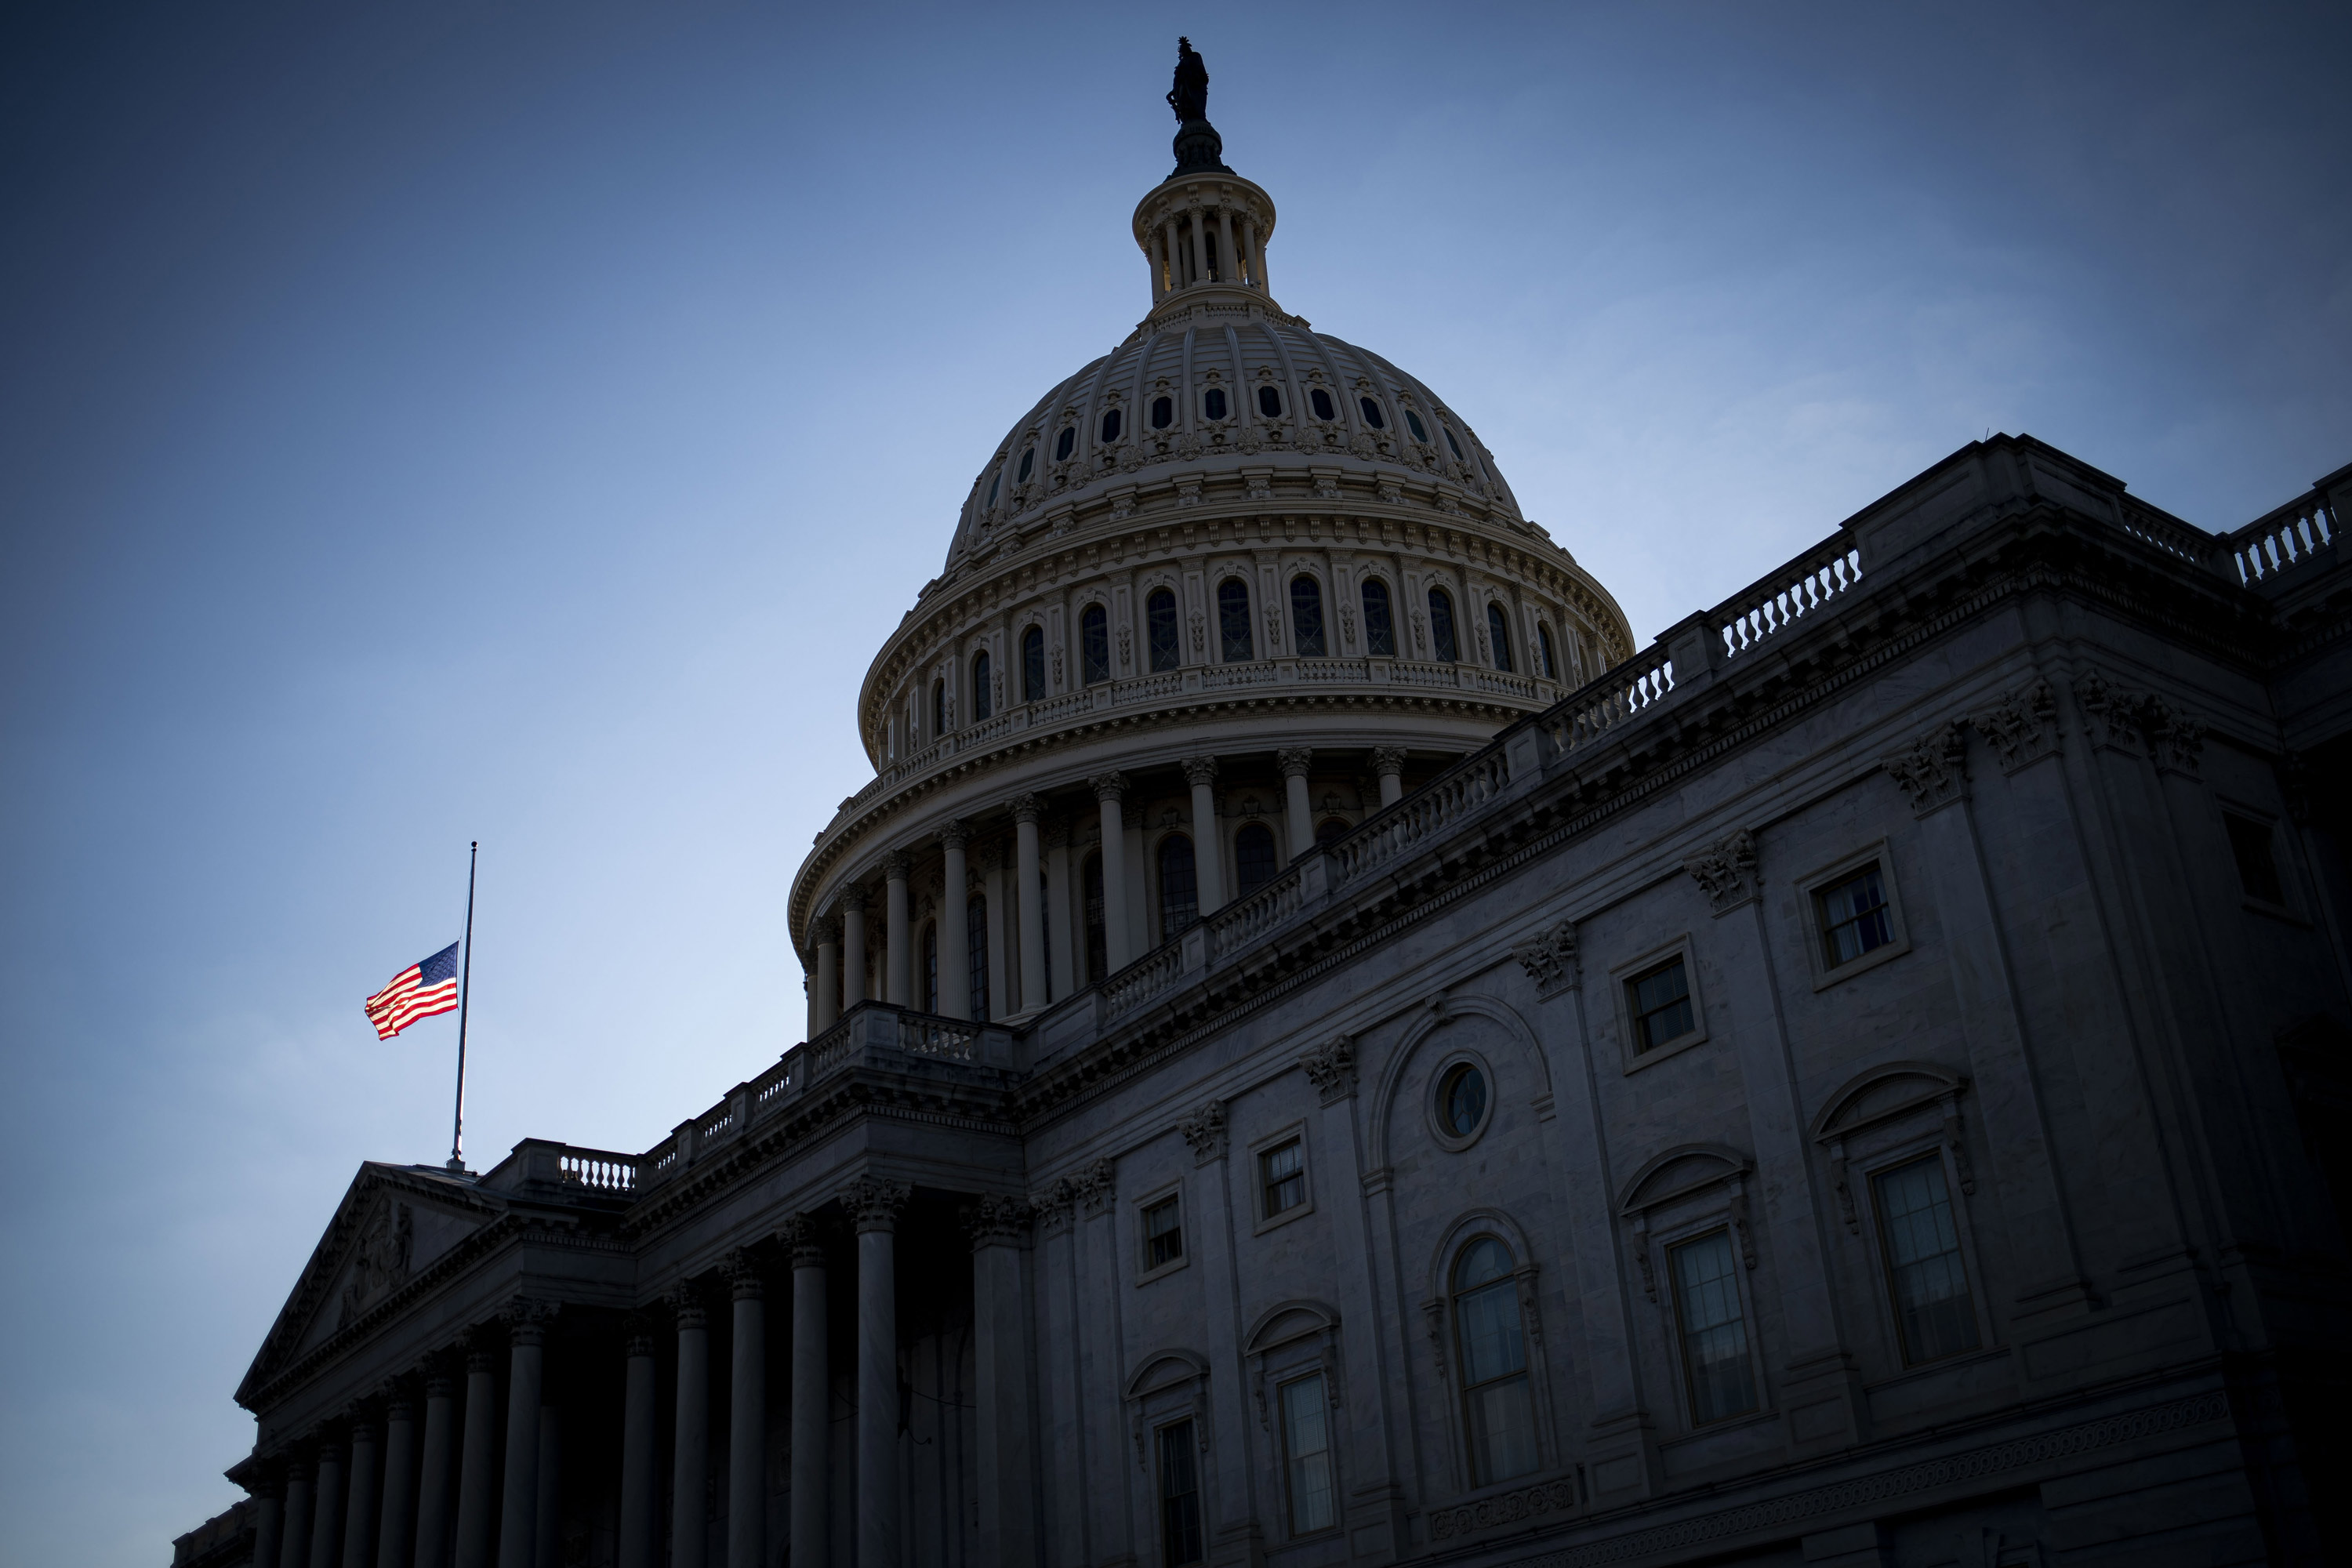 The American flag flies half mast at the U.S. Capitol in Washington, D.C., on December 7.